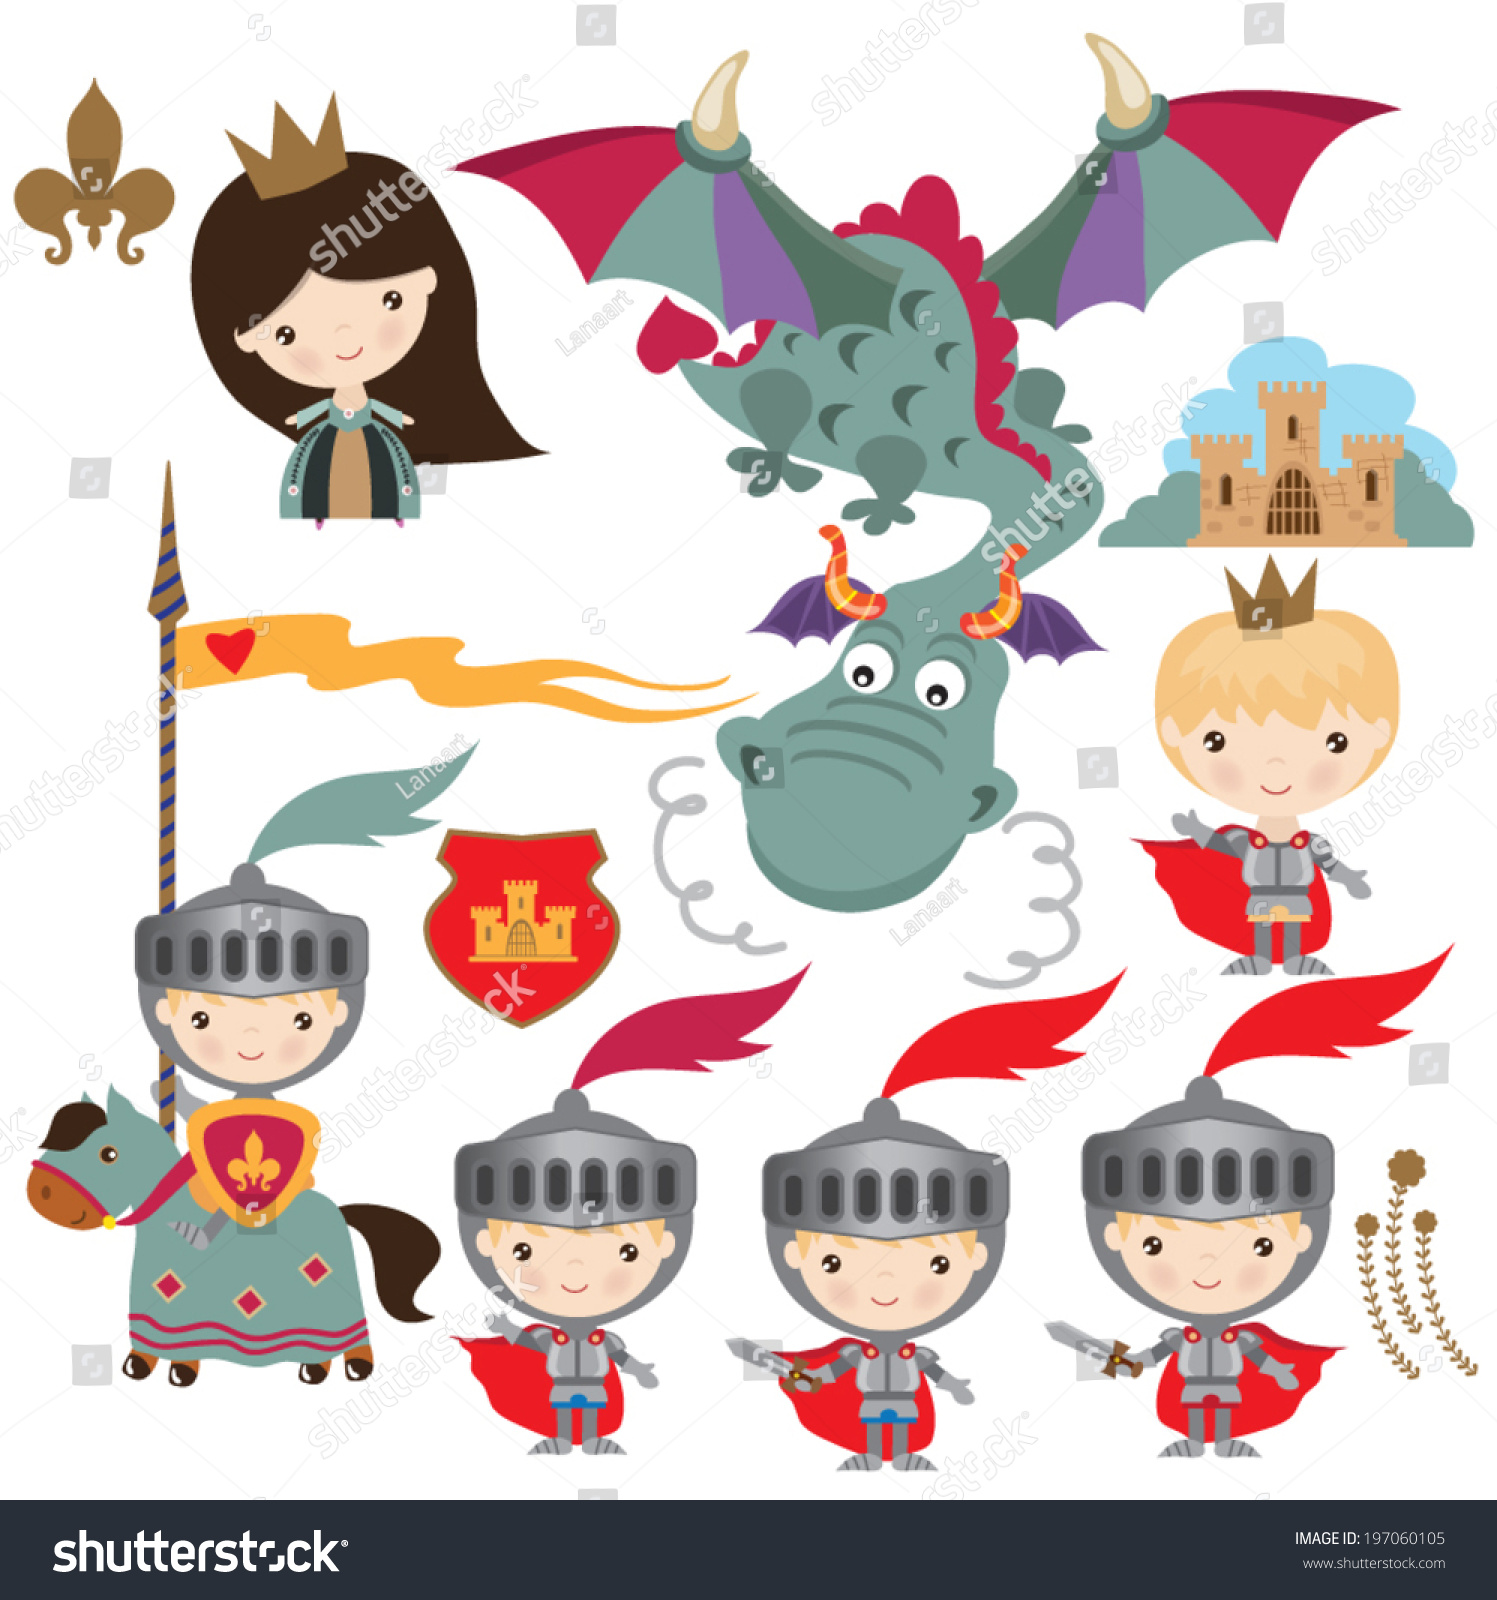 medieval dragon knight princess illustration stock vector